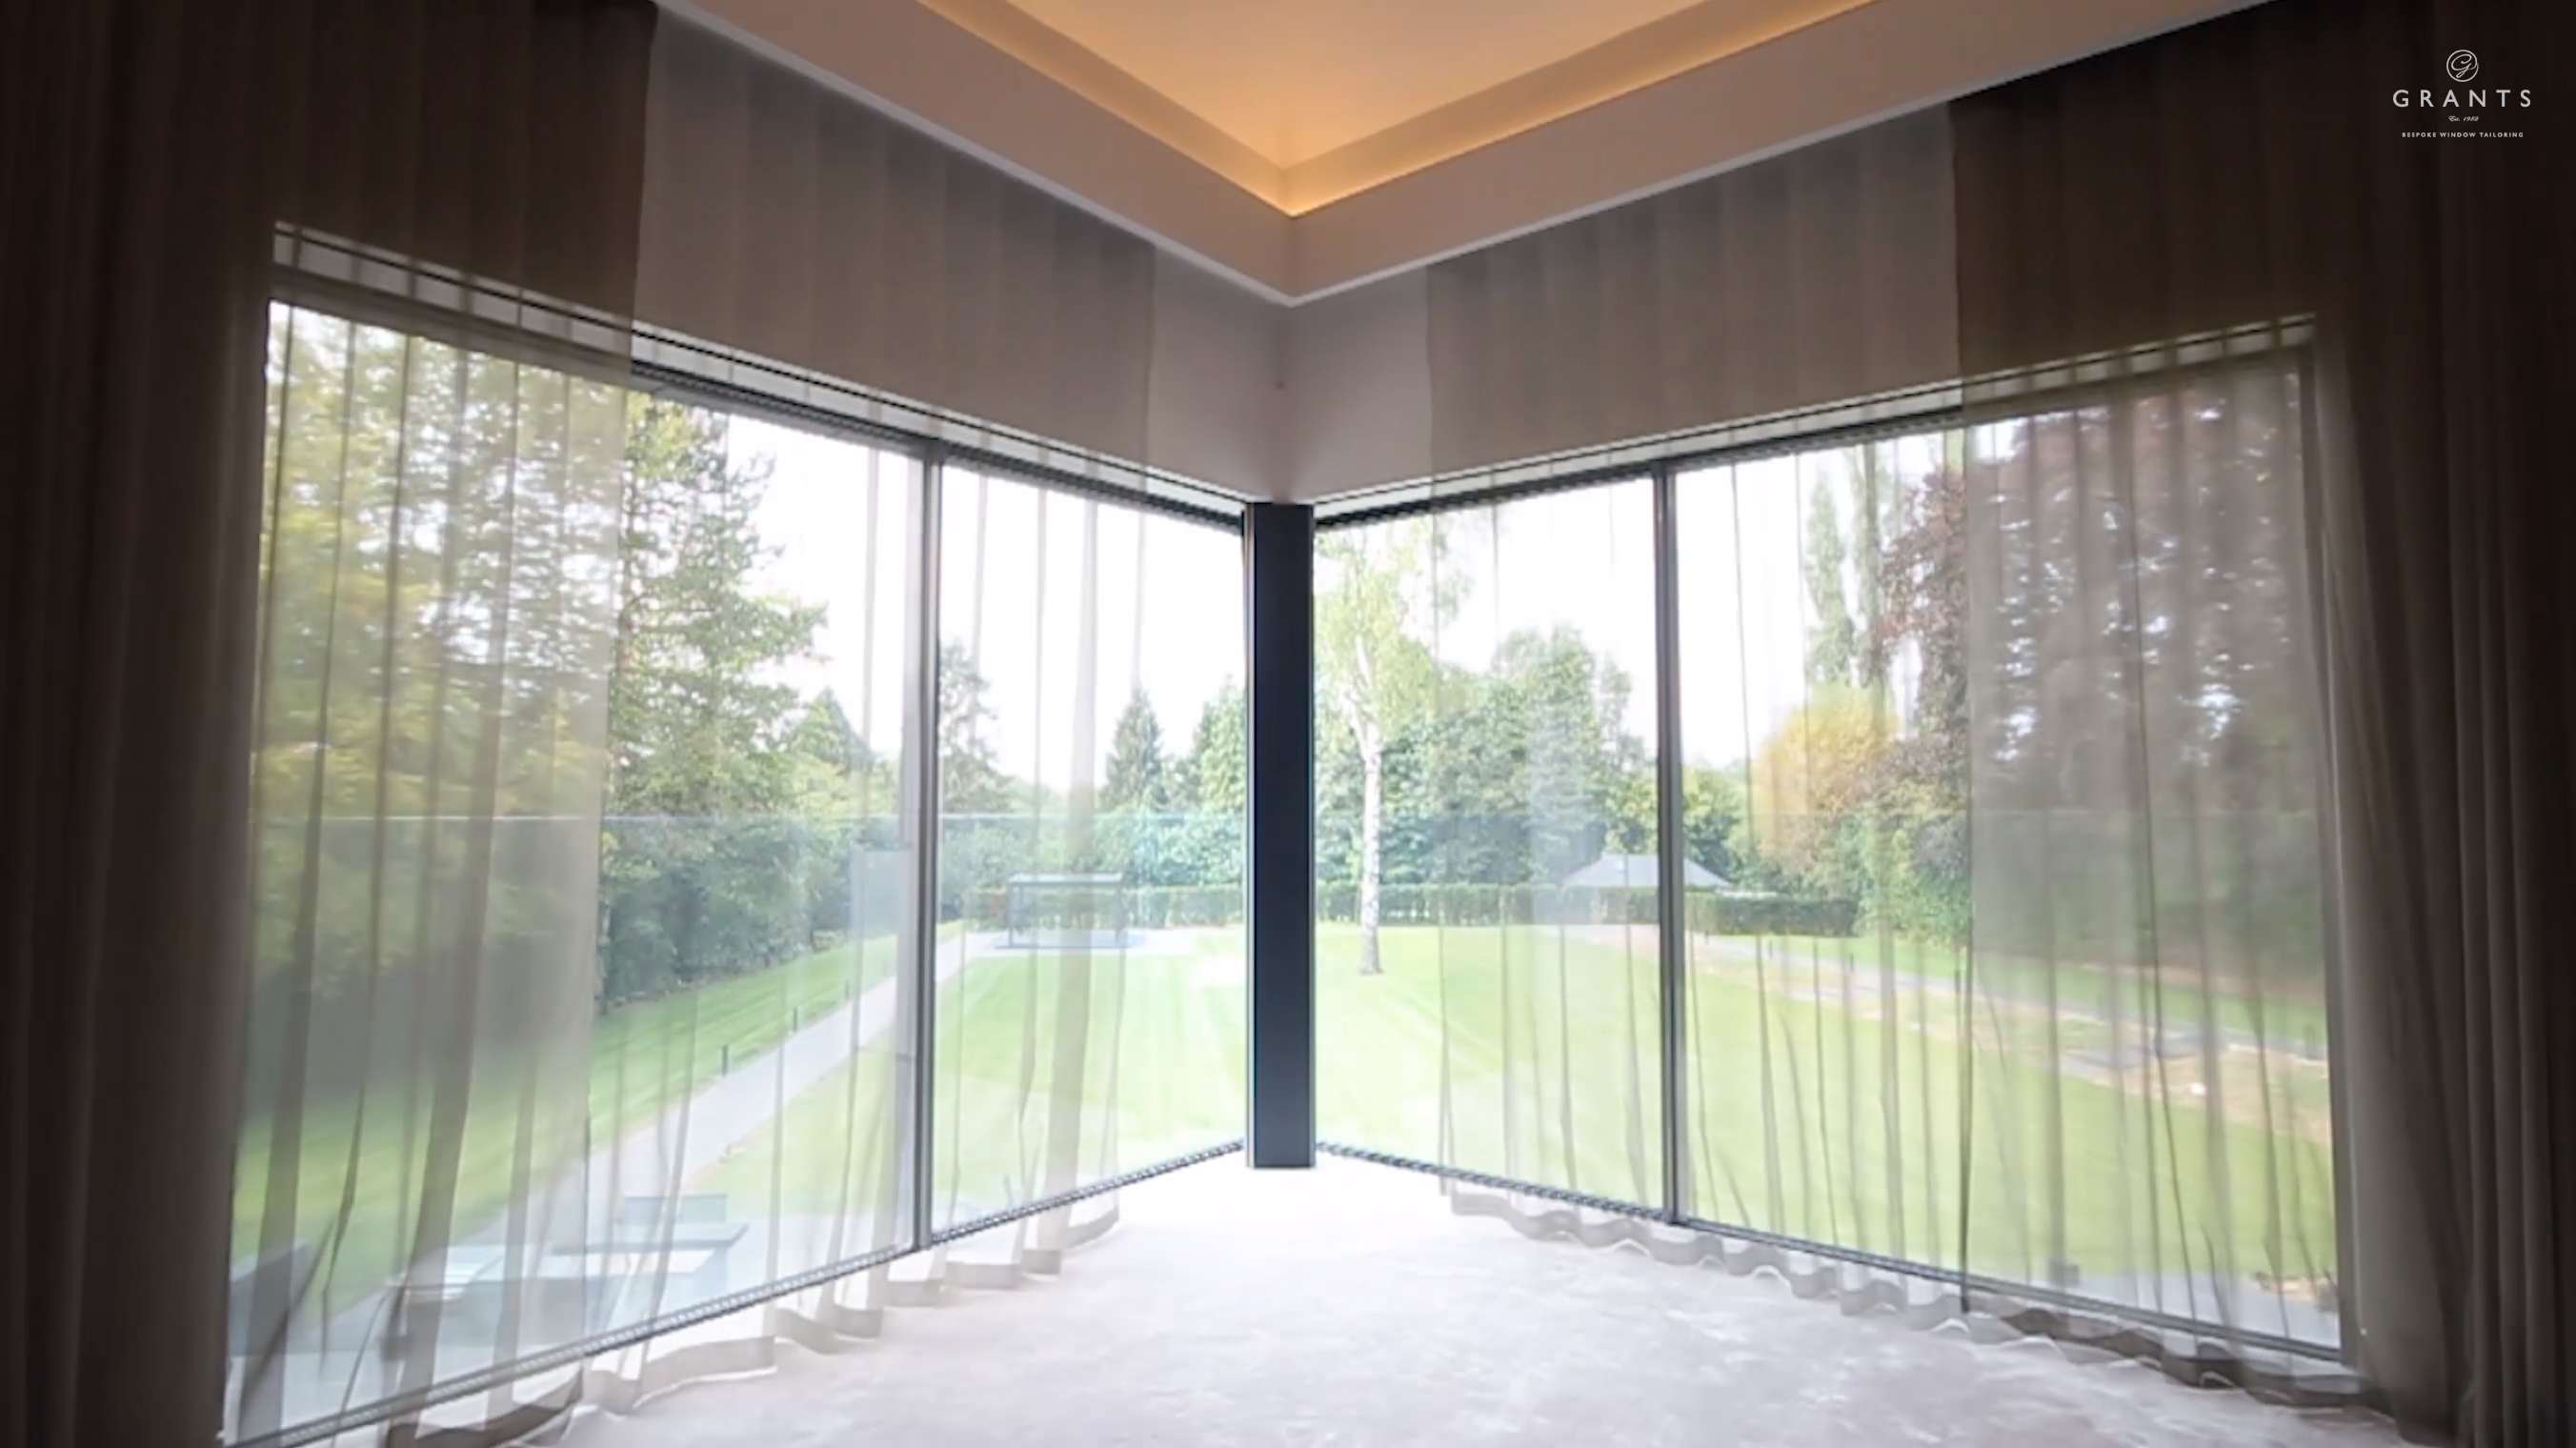 Luxurious Master's Bedroom with Blackout Blinds and Curtains in sliding doors and window. Blinds and side channels are concealed when not in use to create a completely contemporary look